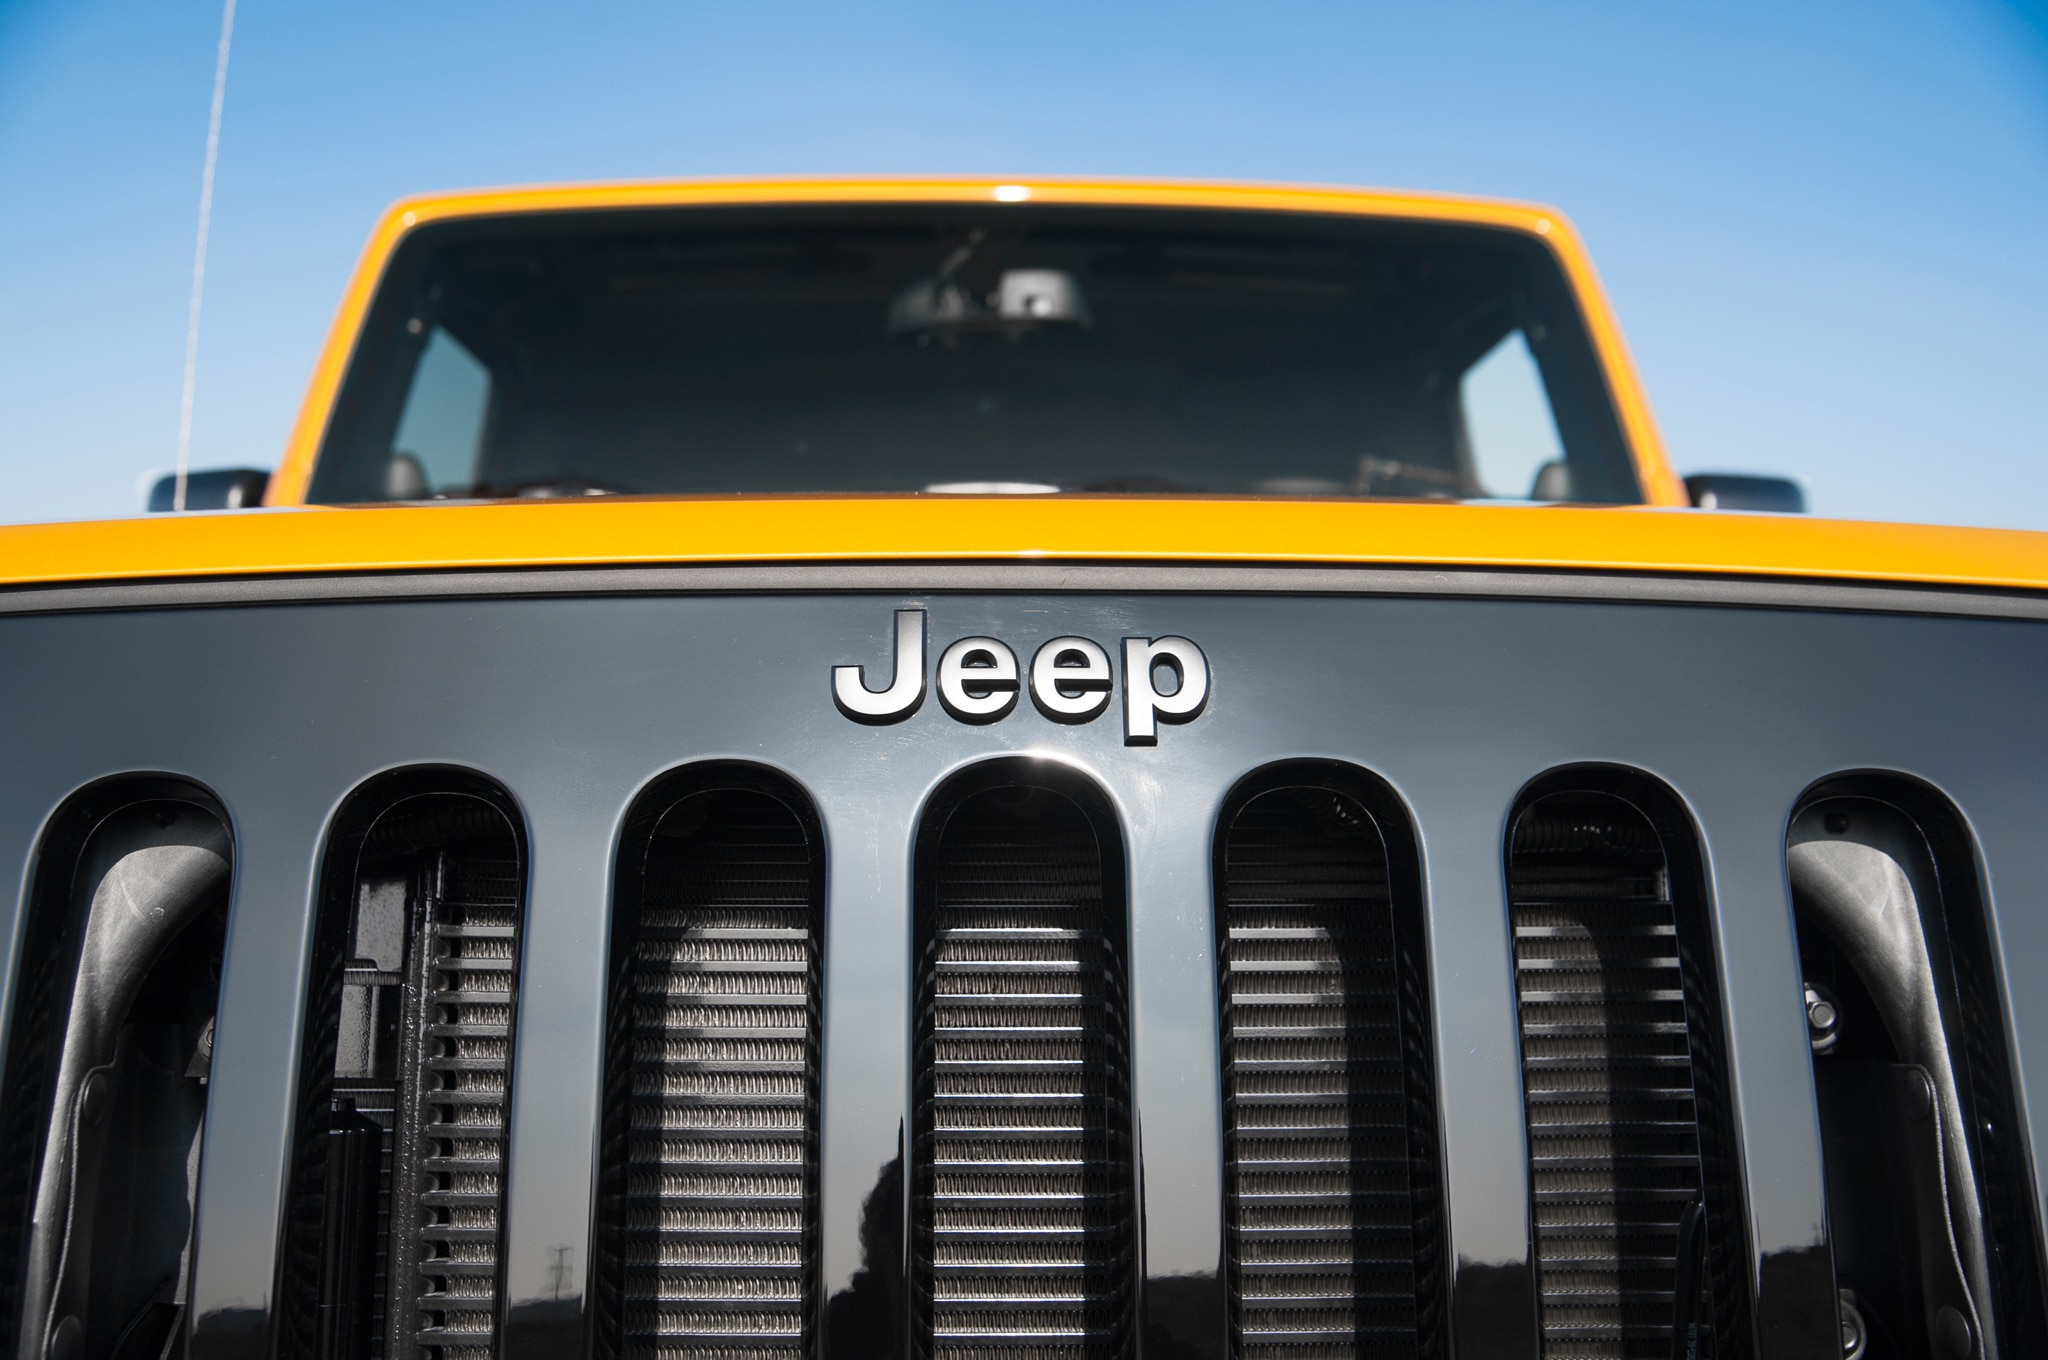 All-New Jeep Wrangler Set to Arrive in 2017